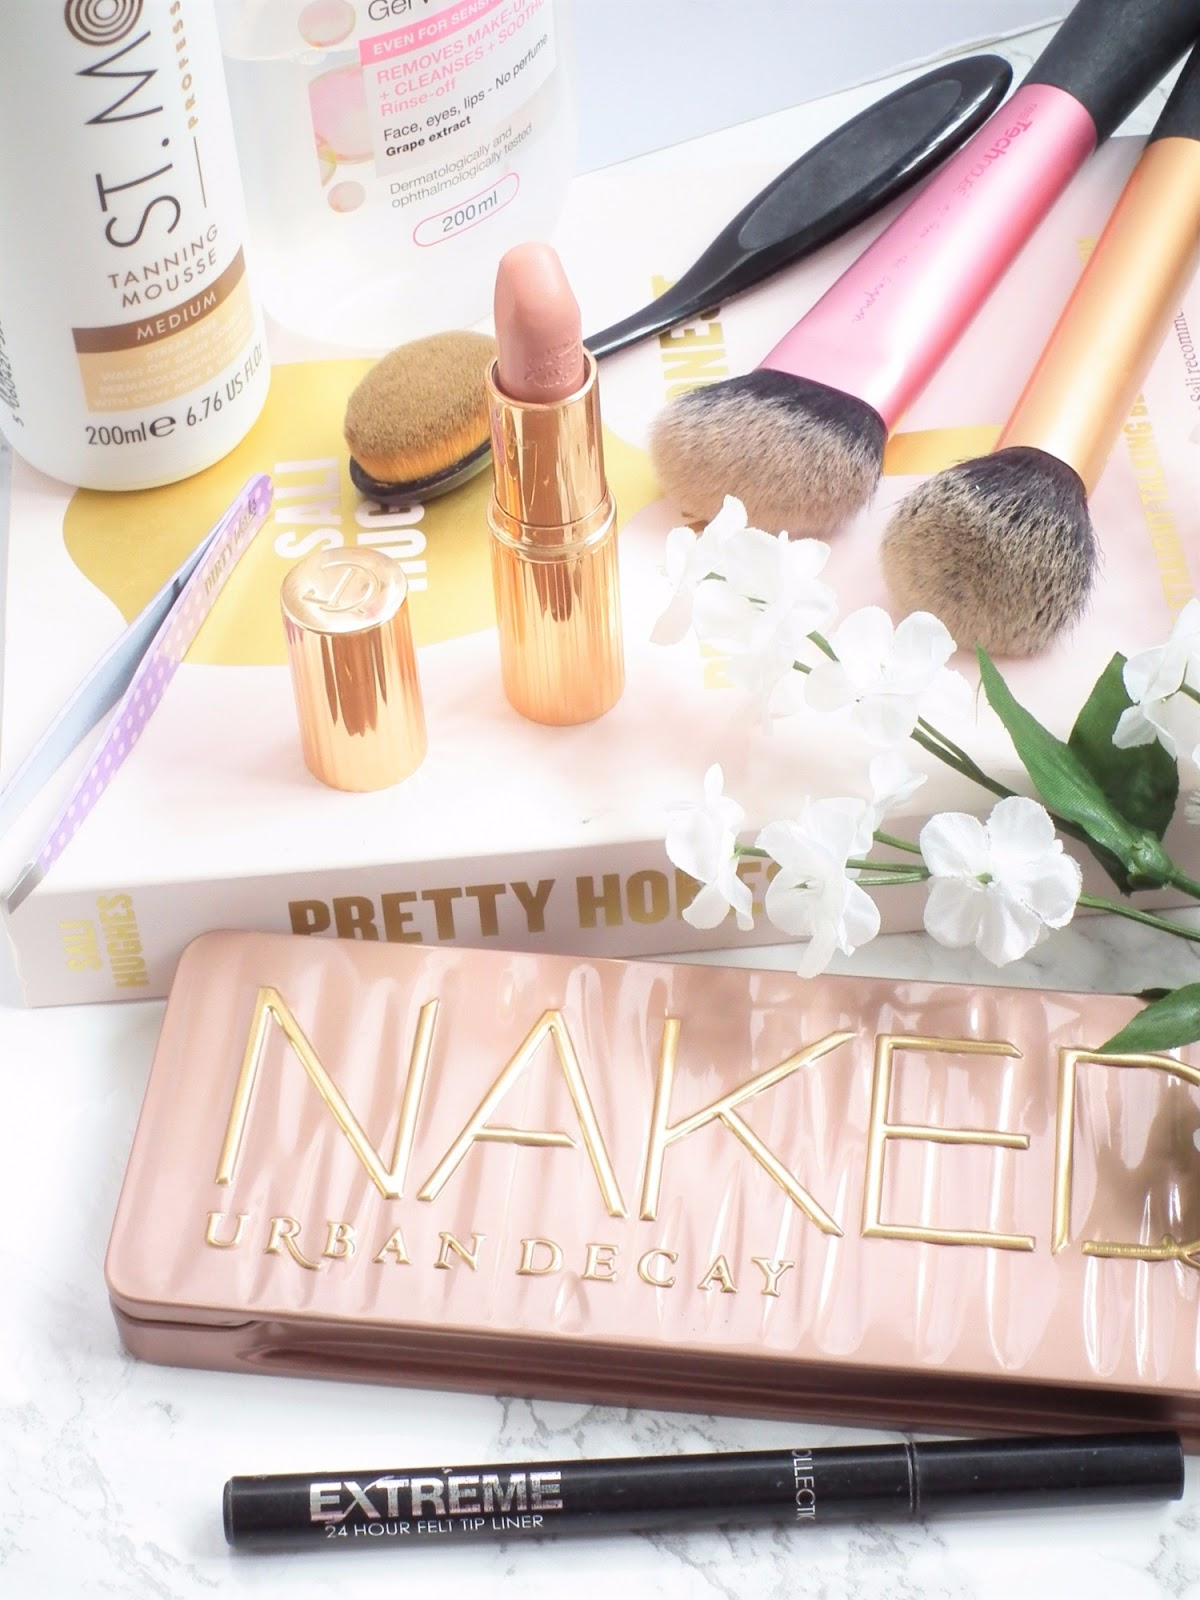 Confessions Of A Beauty Blogger